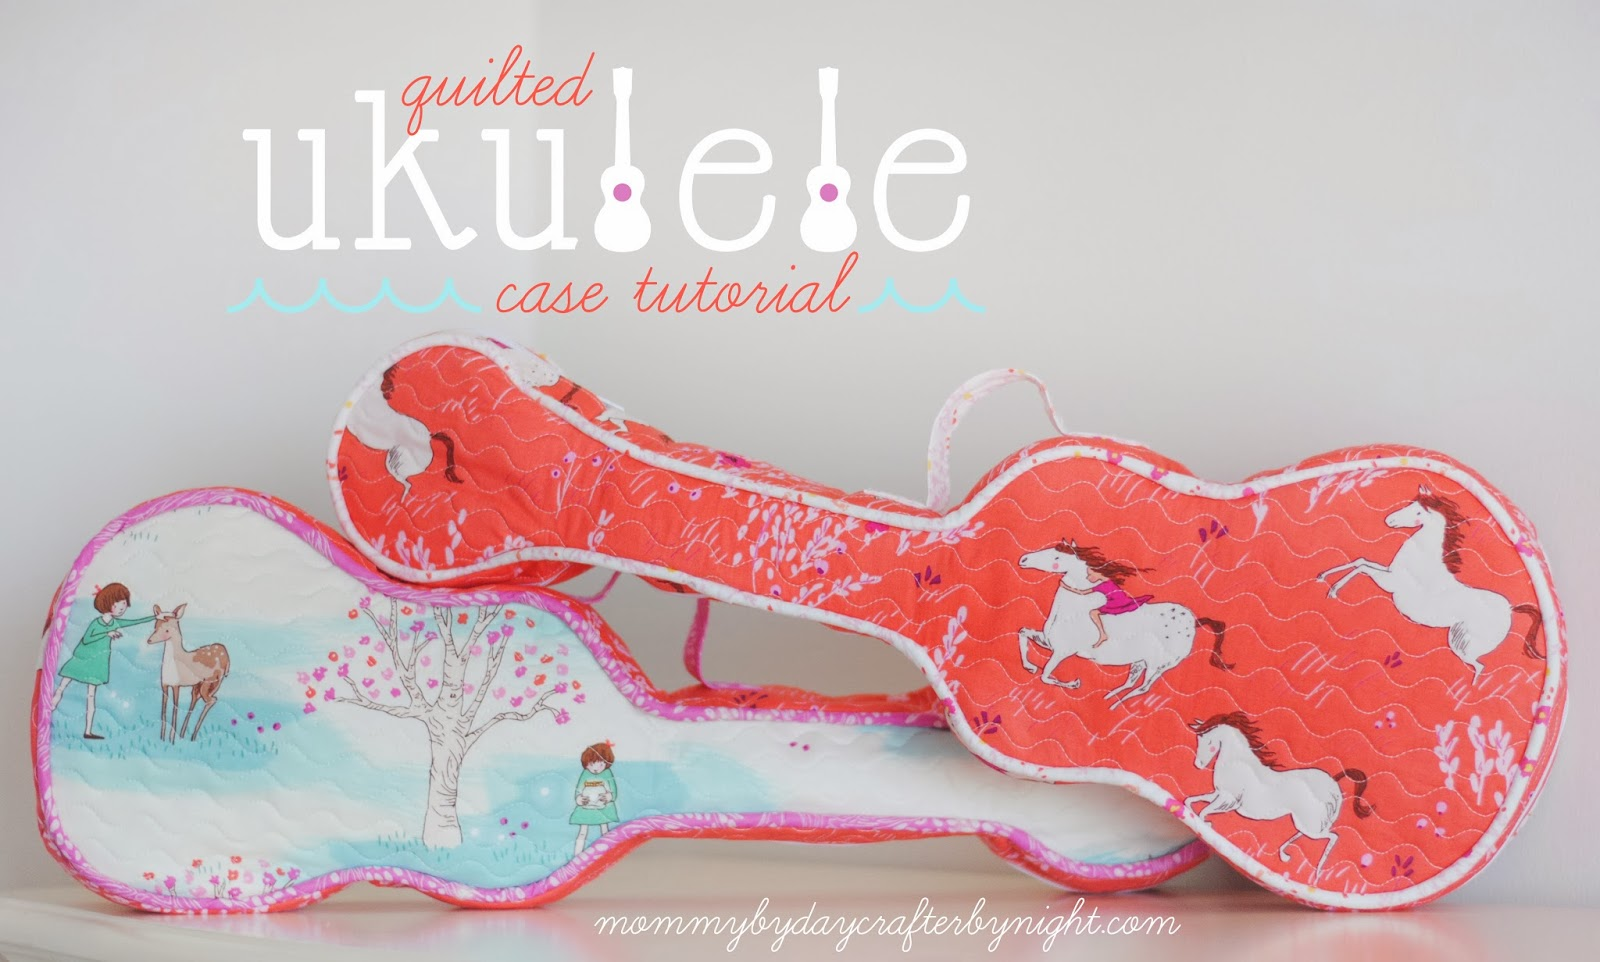 Quilted Ukulele Case Tutorial